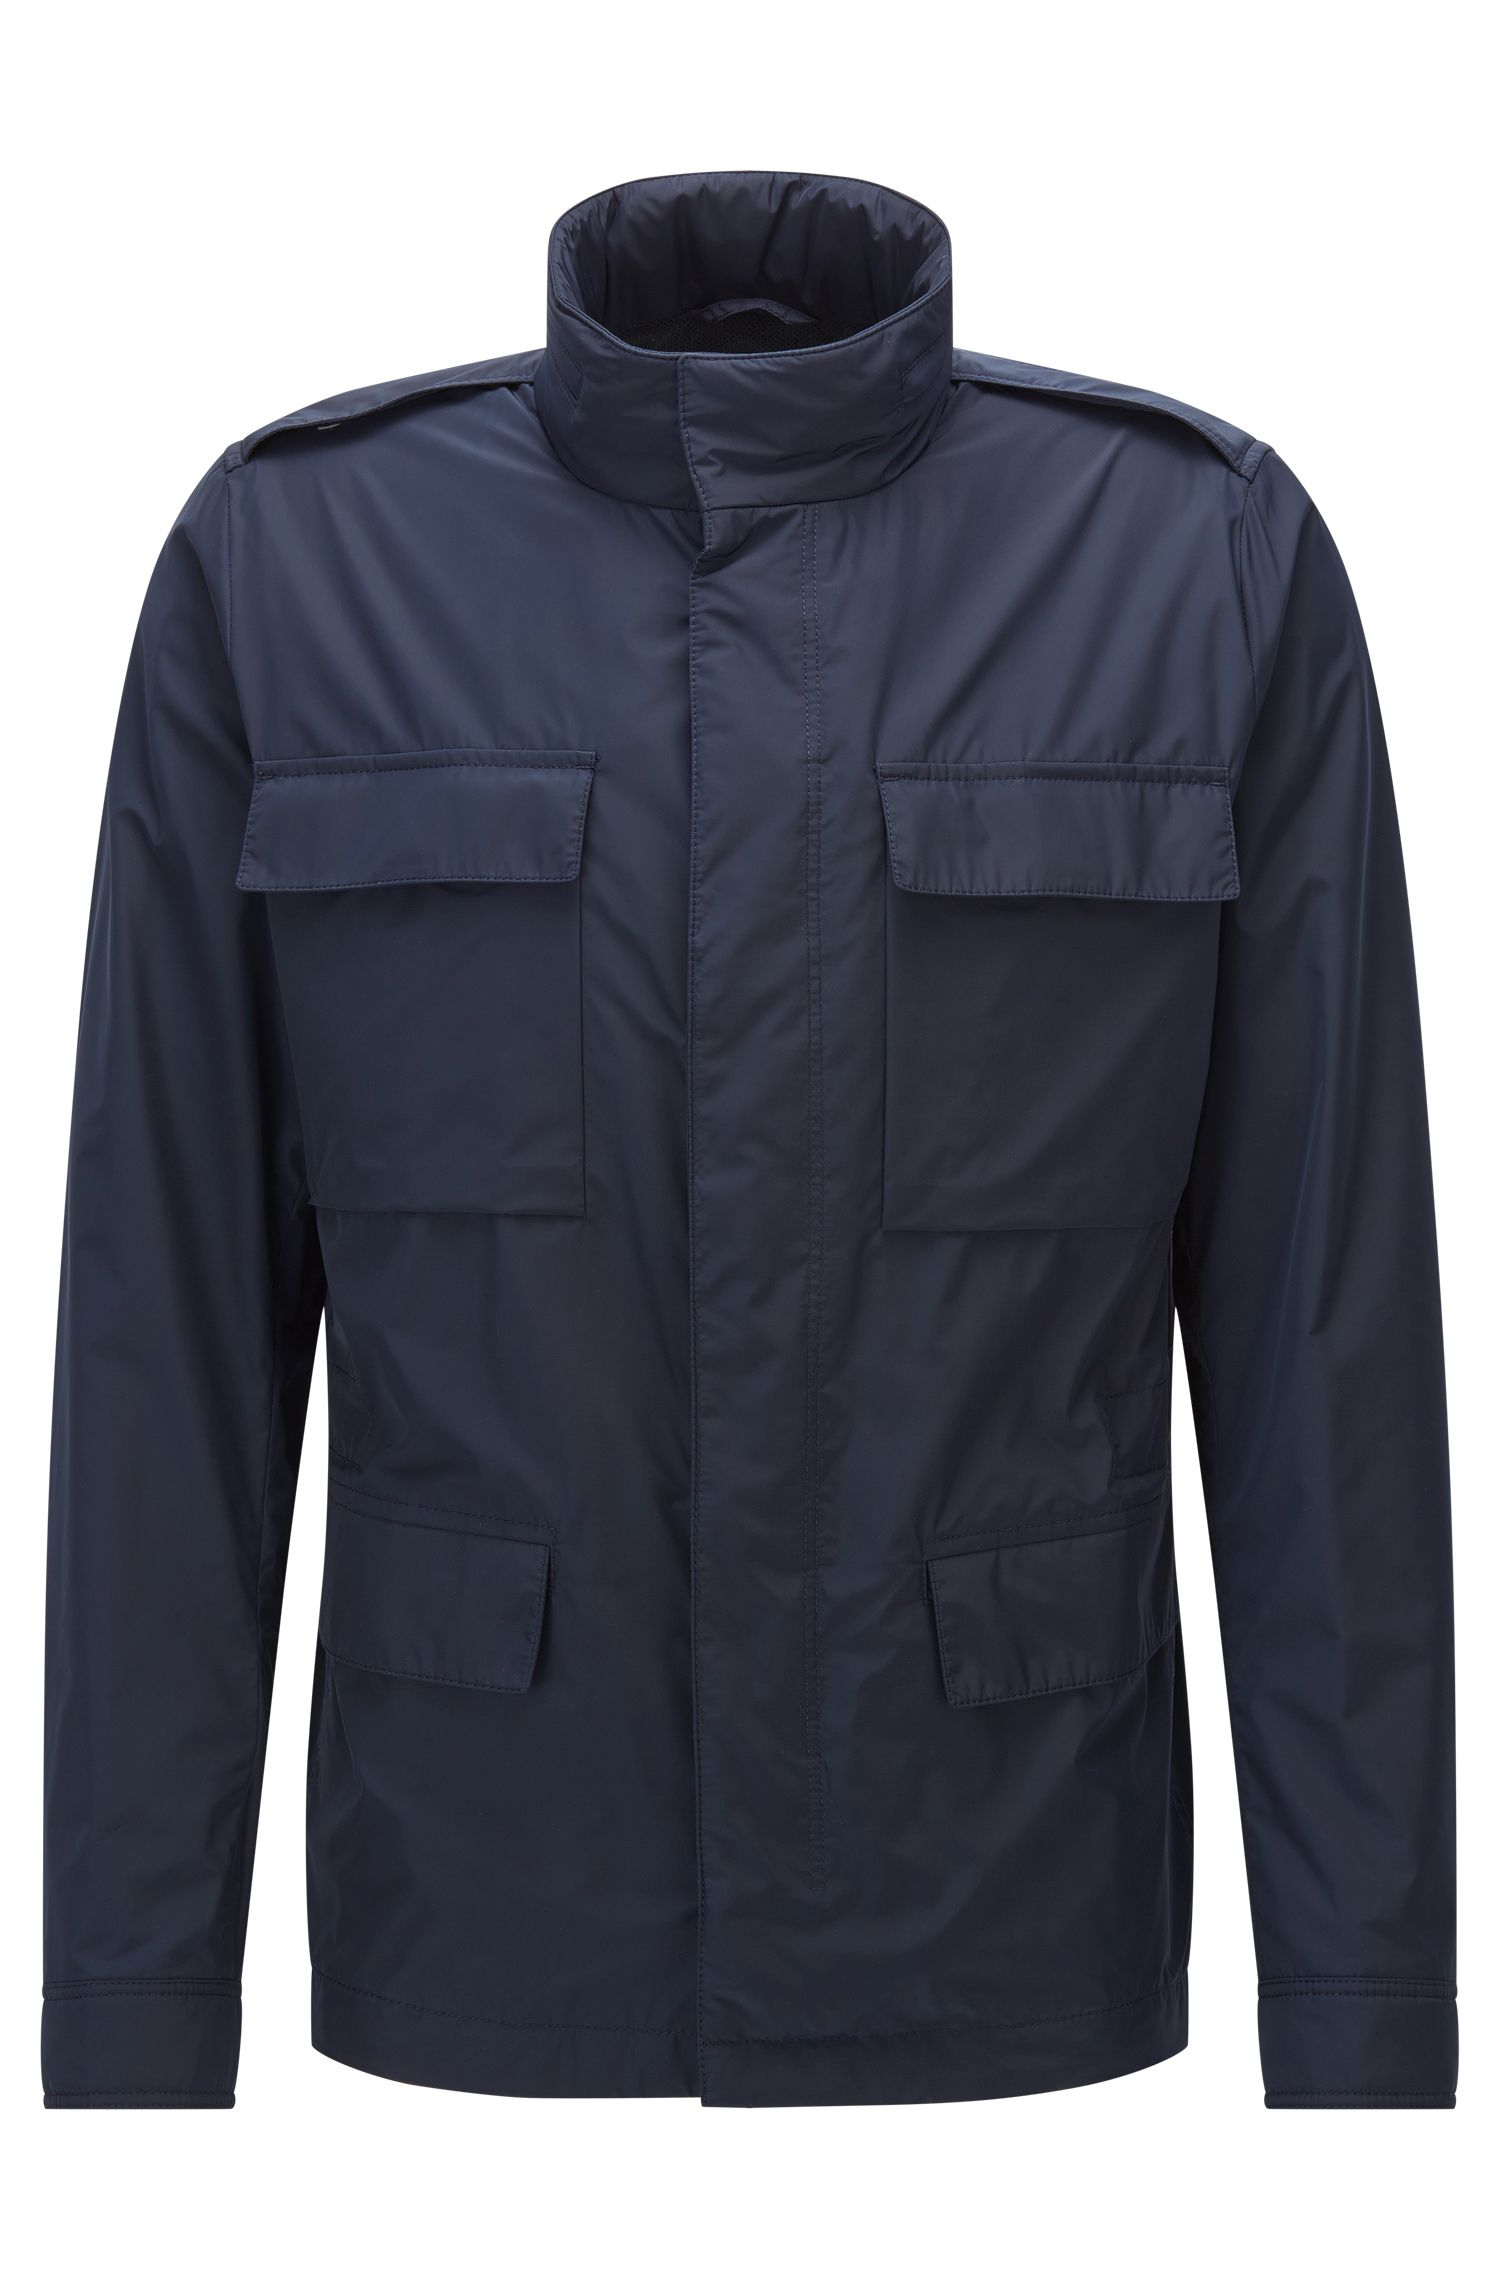 Veste militaire Regular Fit en tissu technique